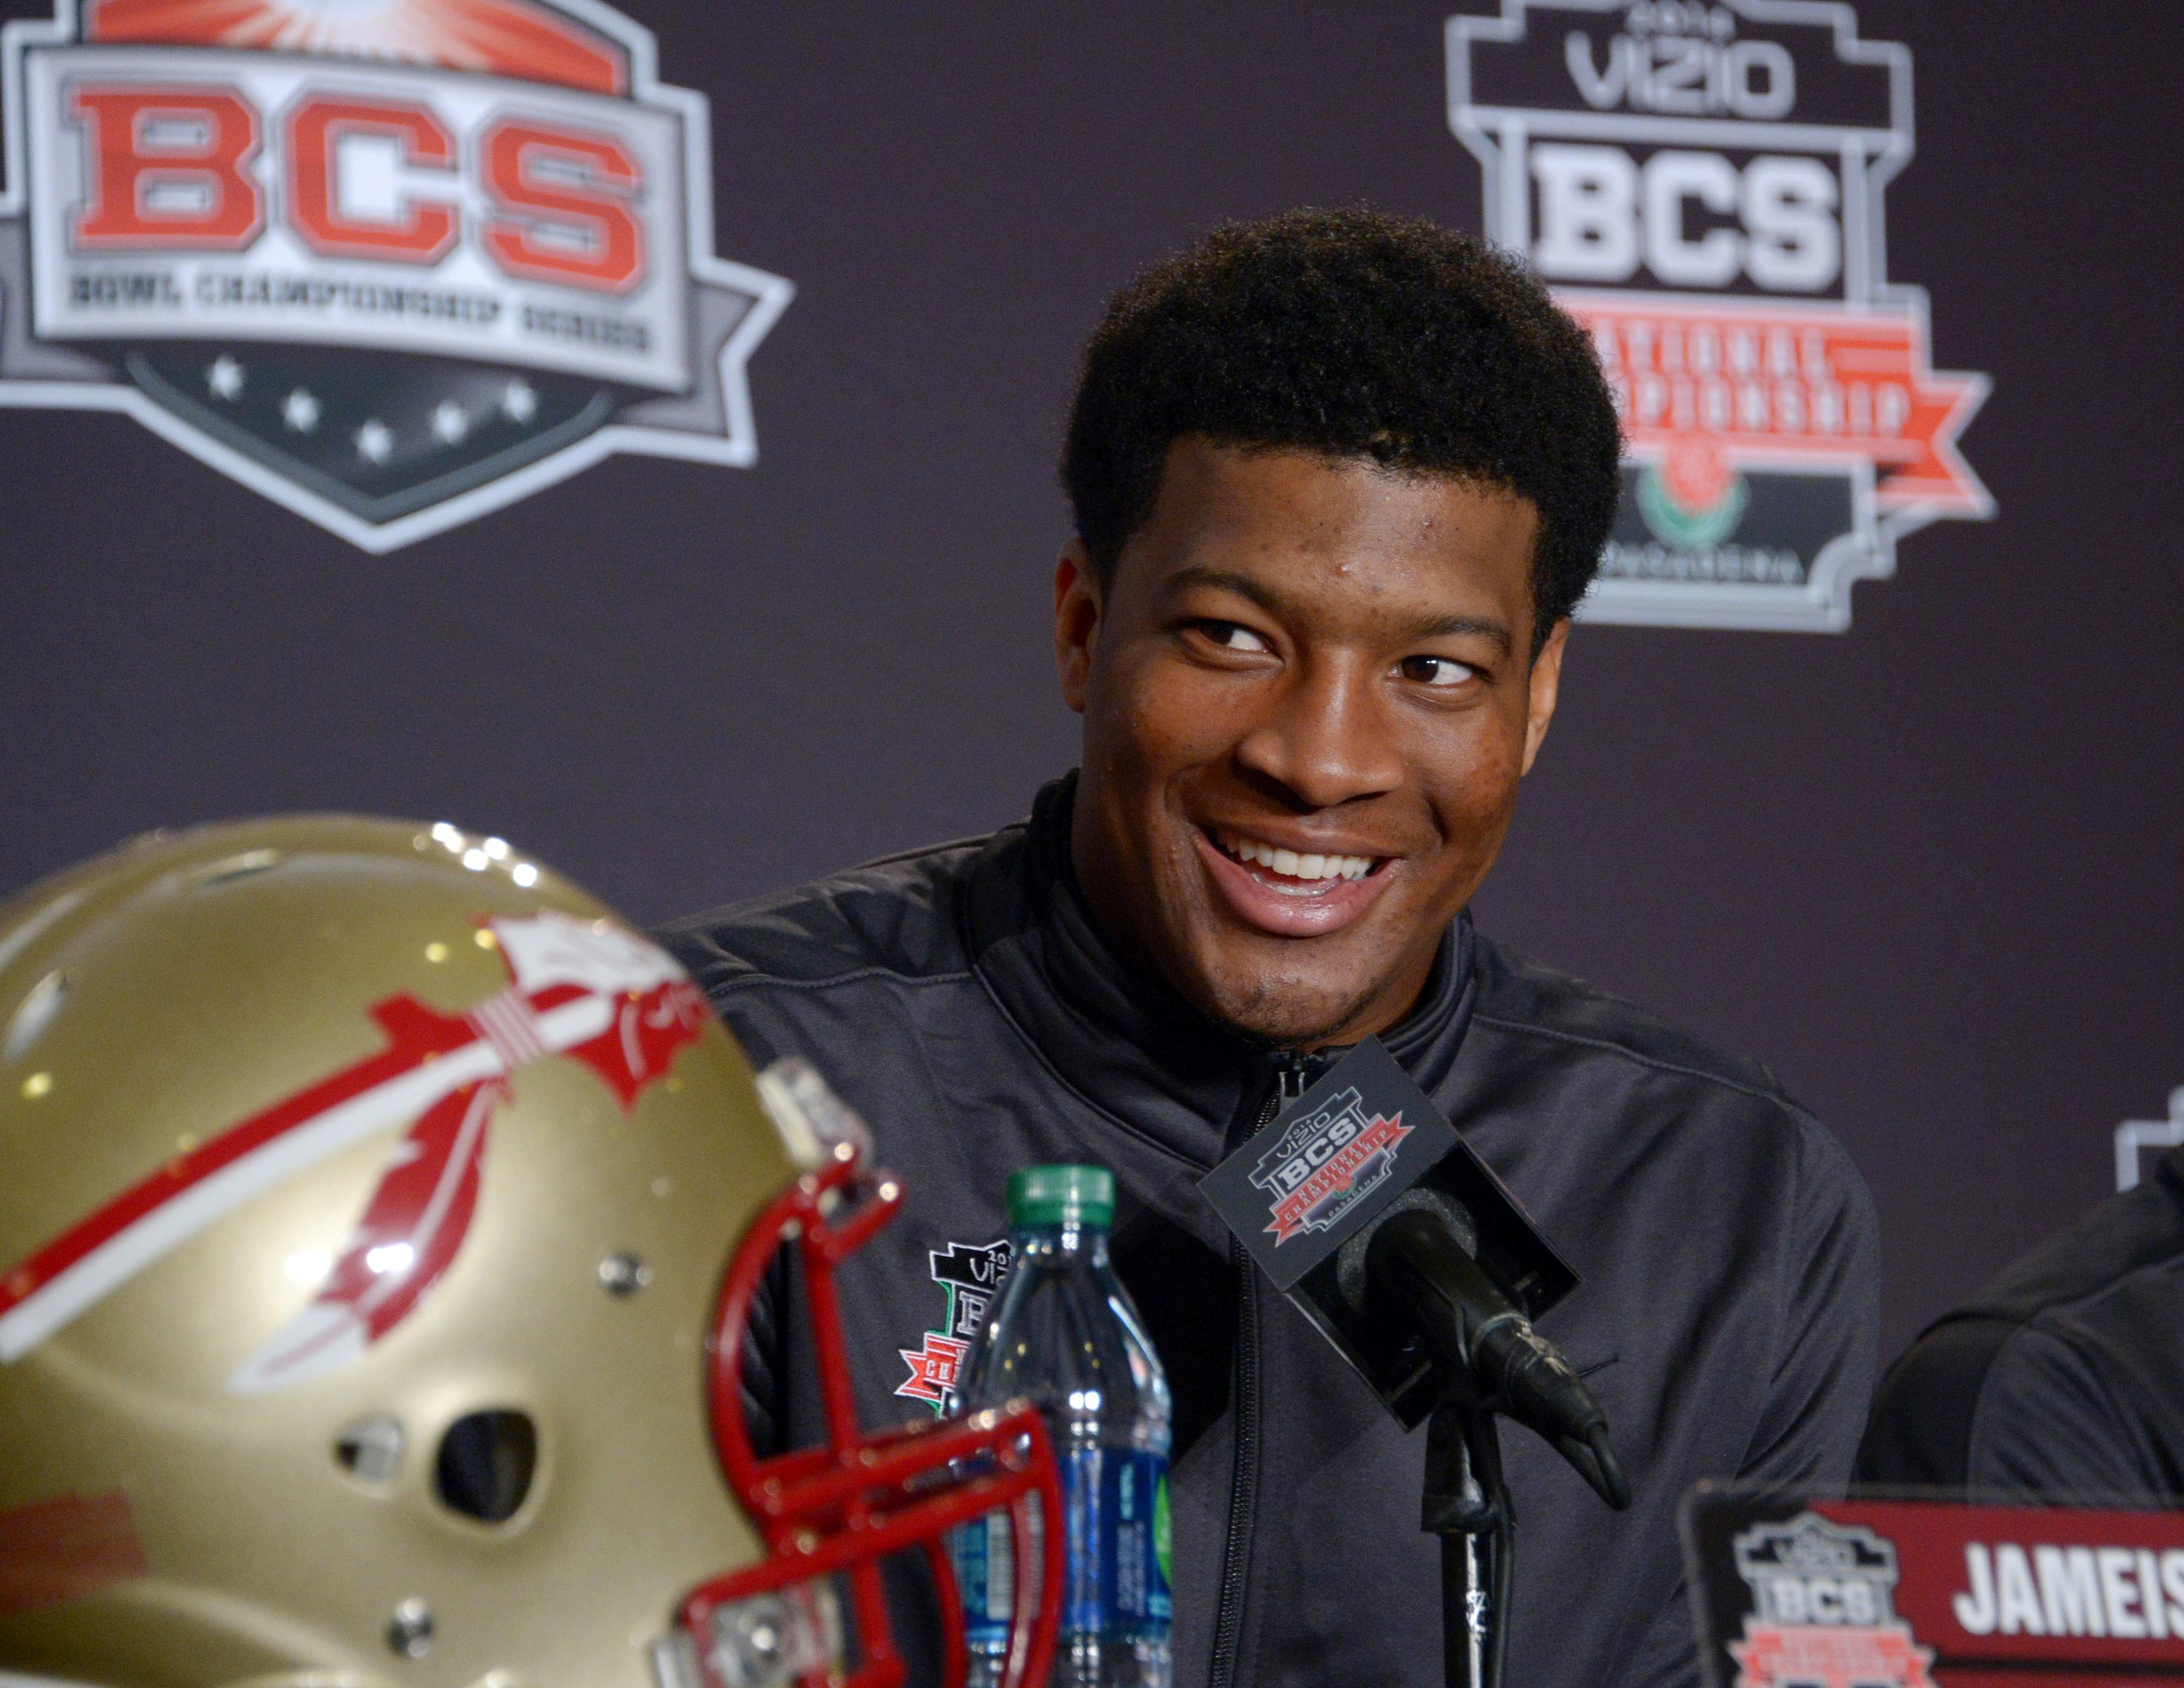 2014 BCS Championship betting: Florida State vs. Auburn odds, prediction, and trends